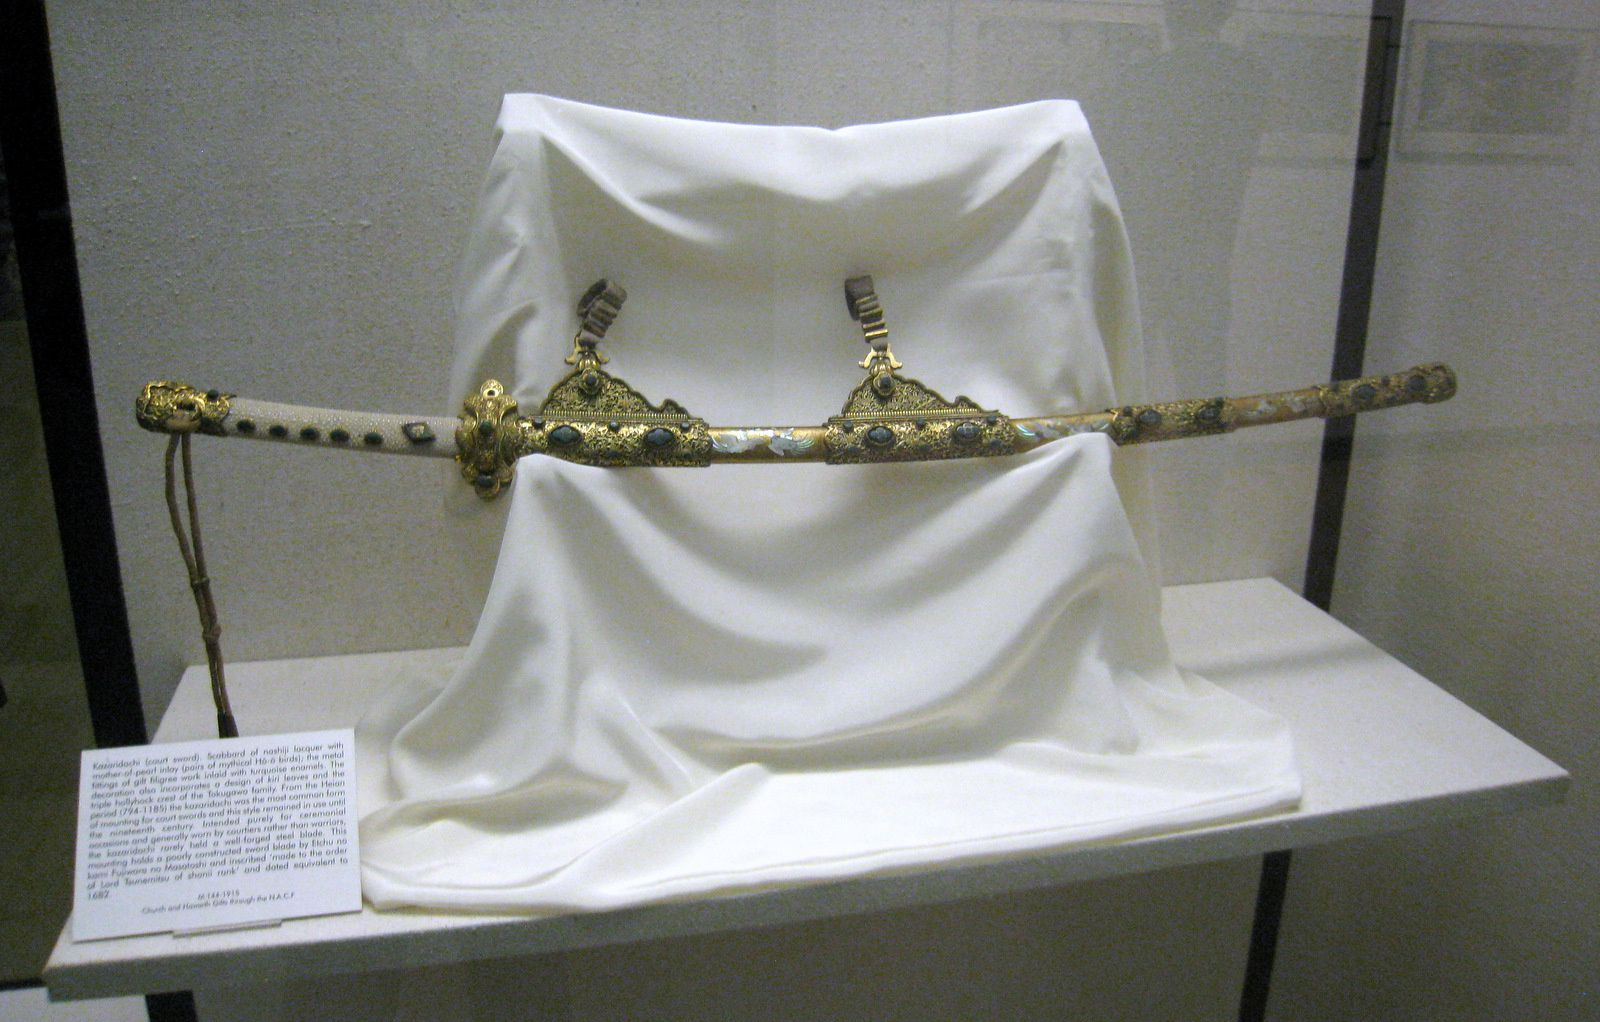 Kazaridachi (épée courte), Victoria and Albert Museum